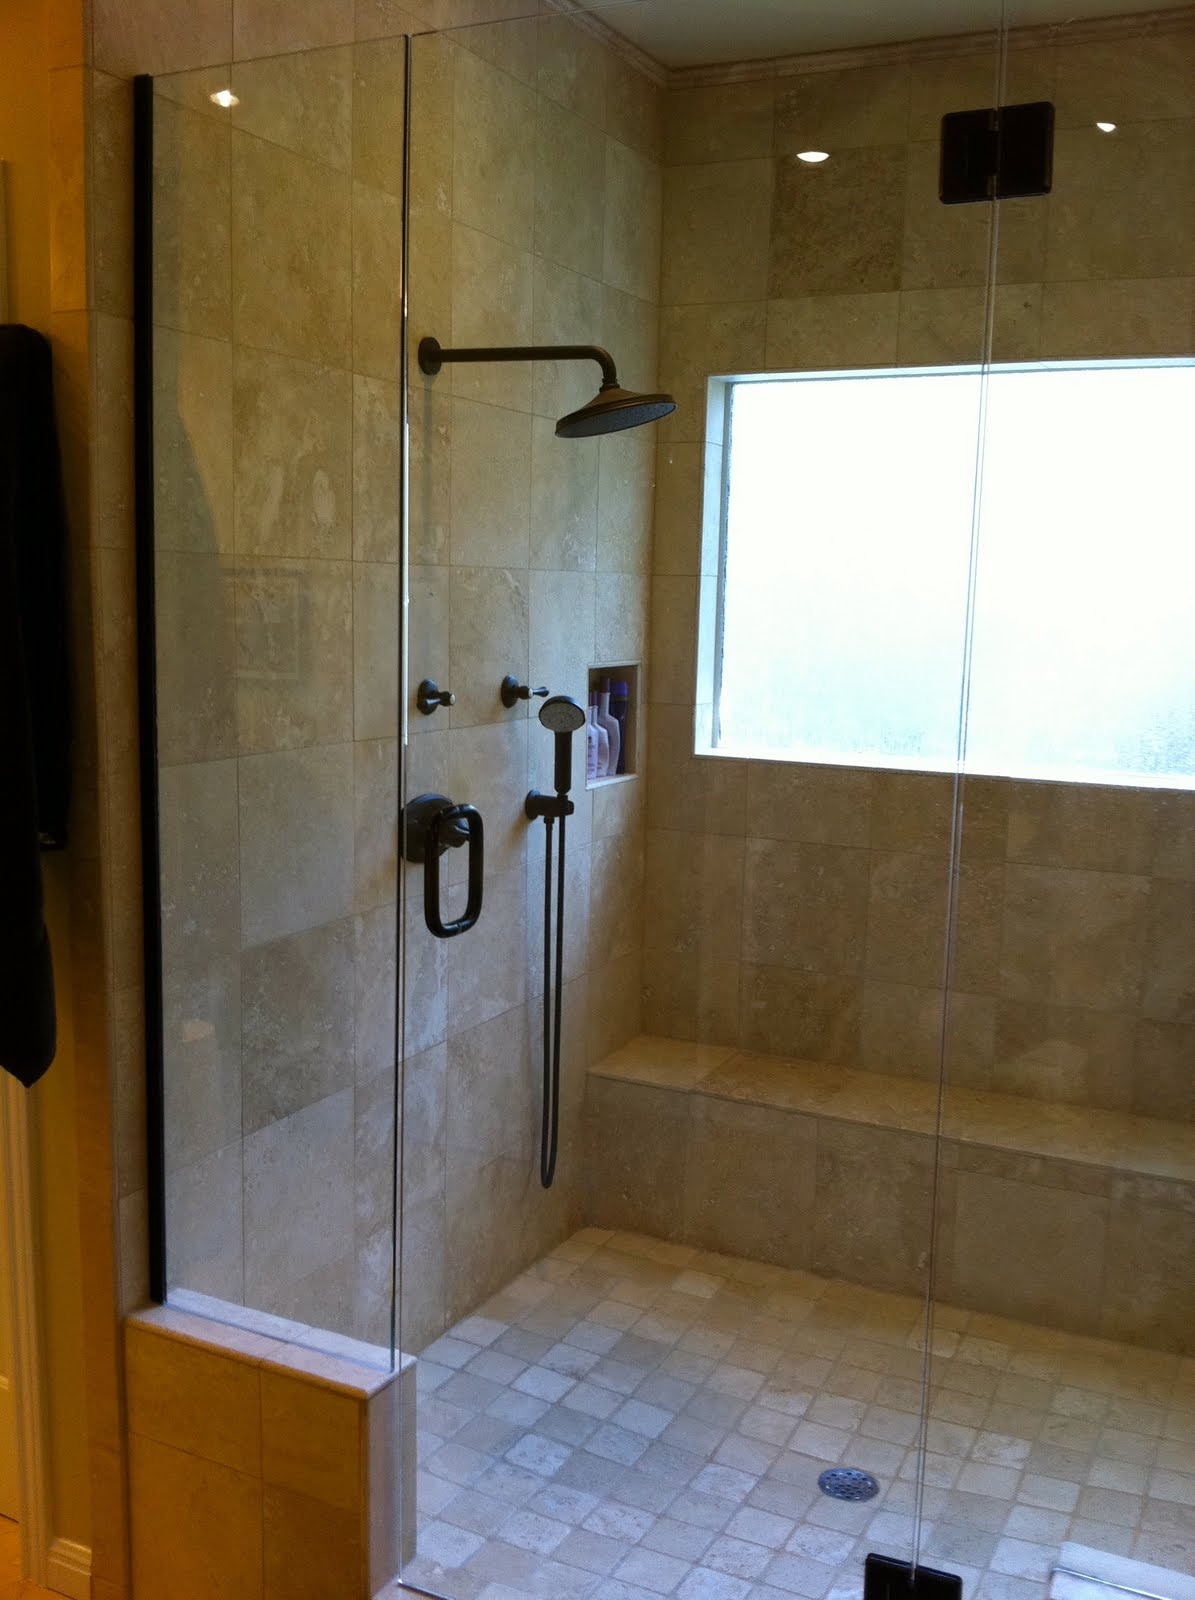 Bathroom Remodel Double Shower : Remodelaholic master bathroom remodel with double shower